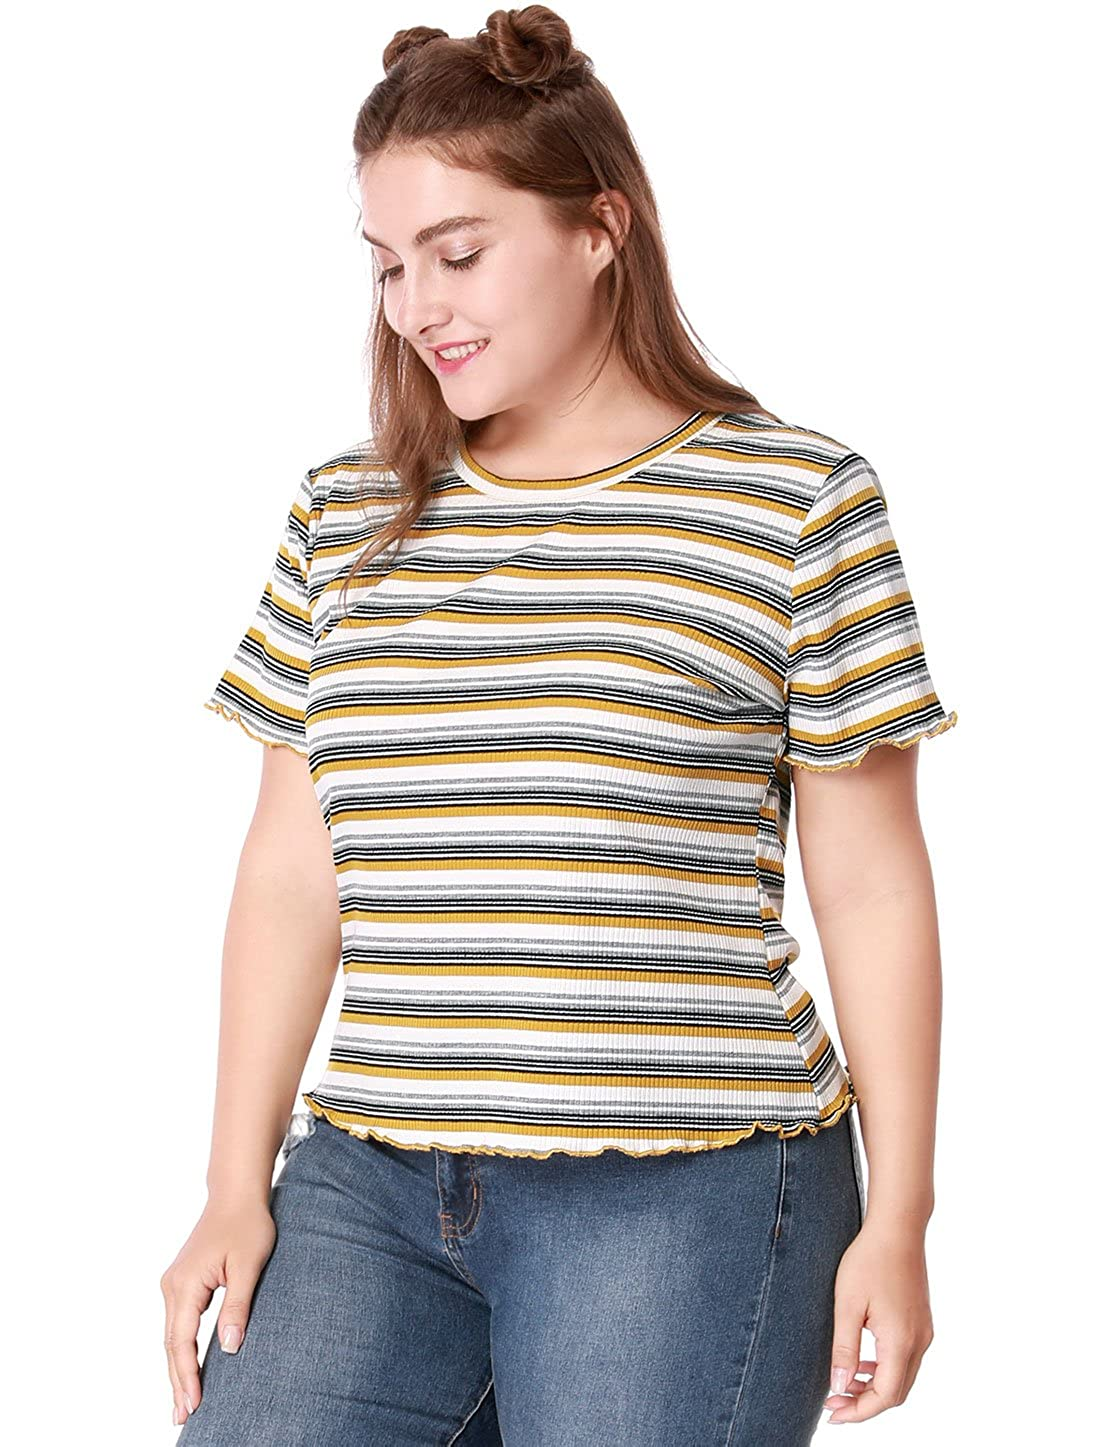 aaf11cff Agnes Orinda Women's Plus Size Short Sleeve Stretch Striped Summer T-Shirt  at Amazon Women's Clothing store: